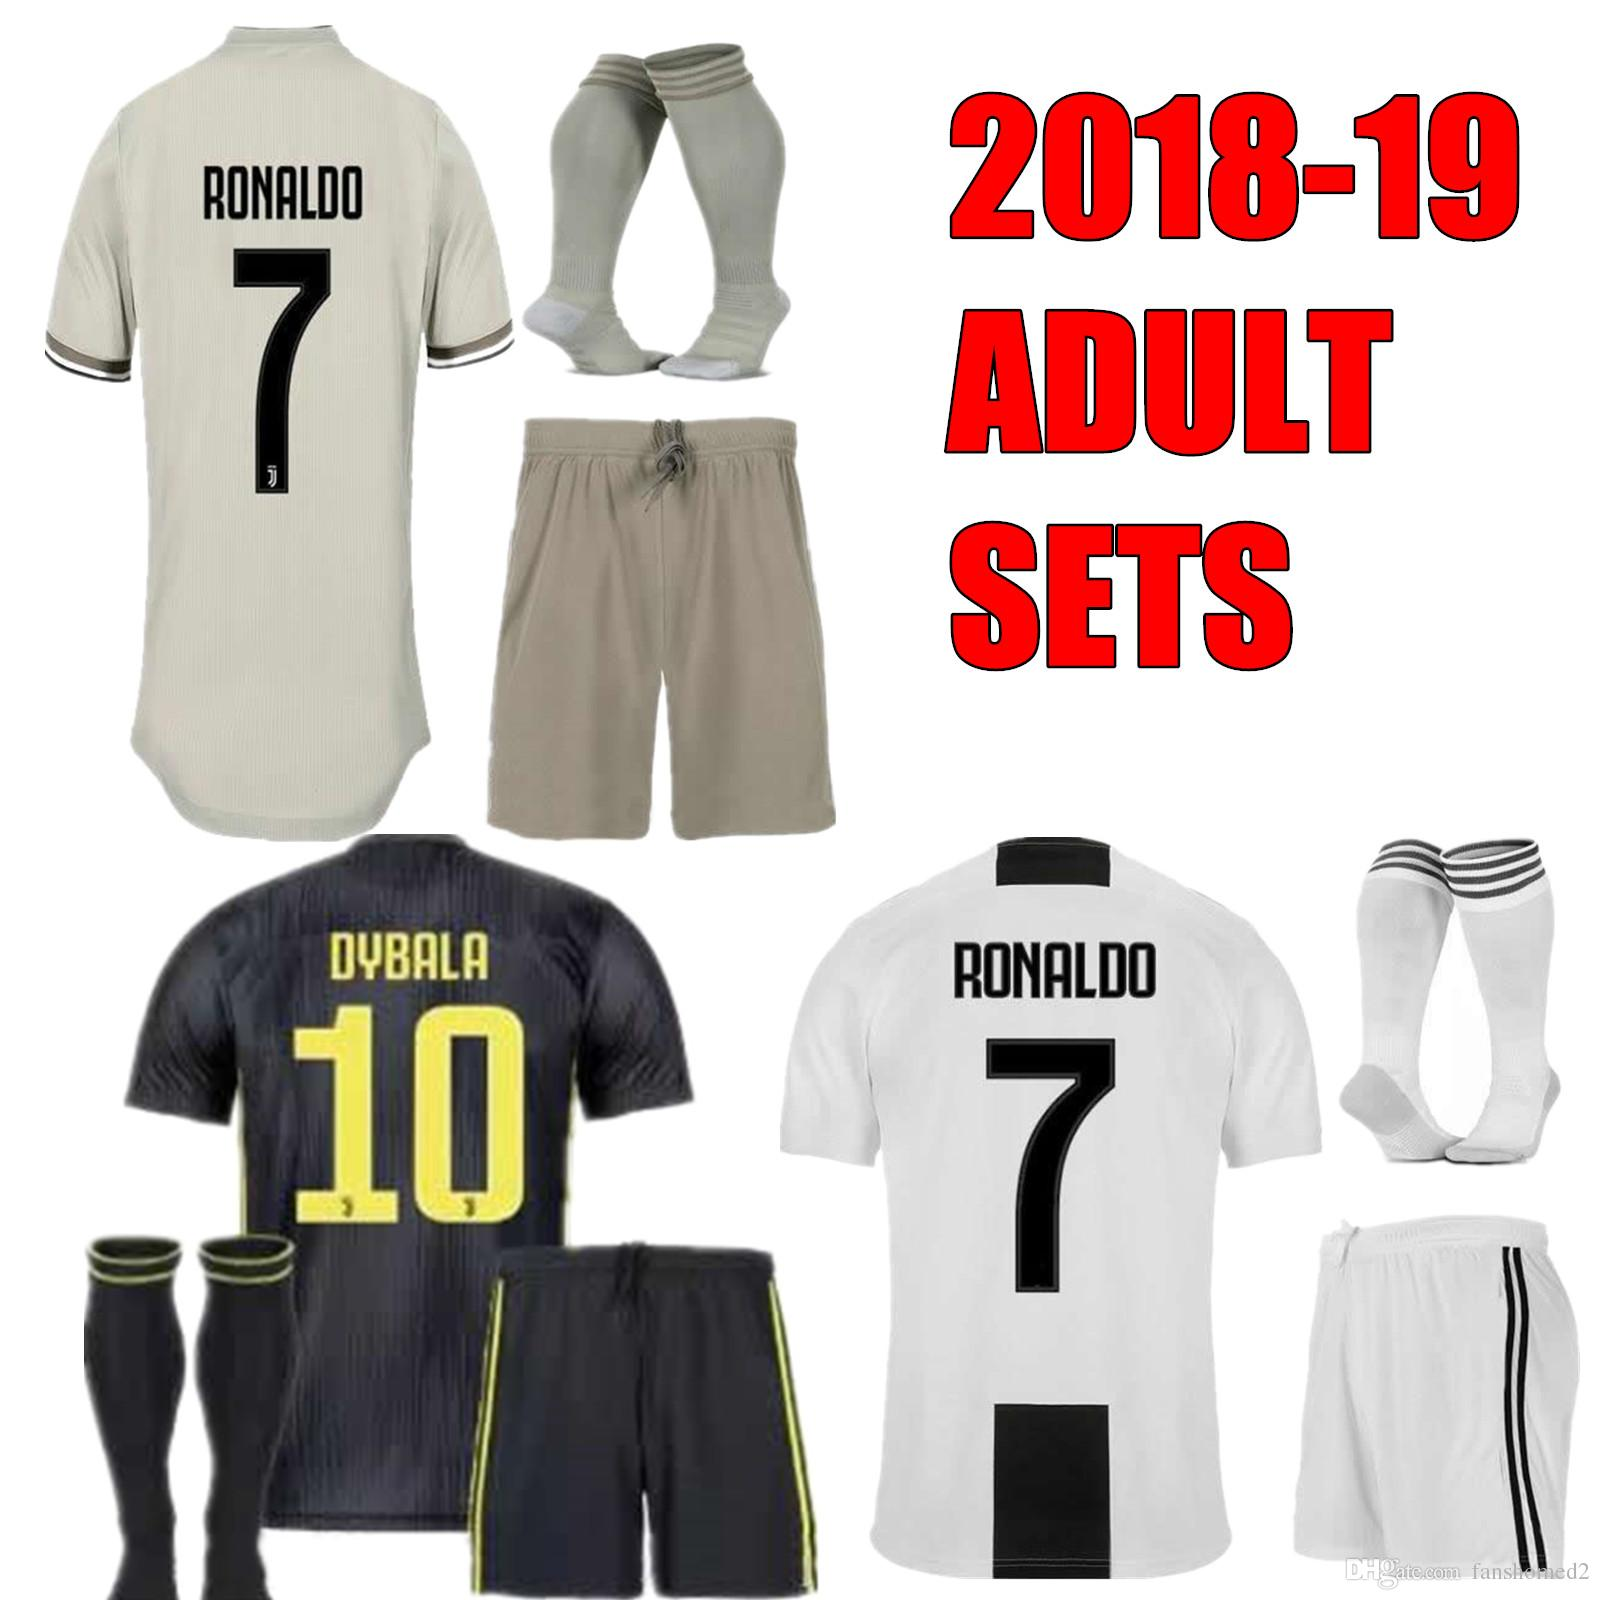 3f53dc747a4 2019 2018 19 Men Kit JUV DYBALA 10 Ronaldo  7 Soccer Jersey Home Away Gold  Third HIGUAIN Uniform MARCHISIO KHEDIRA Football Adults Kits Set From  Fanshomed2